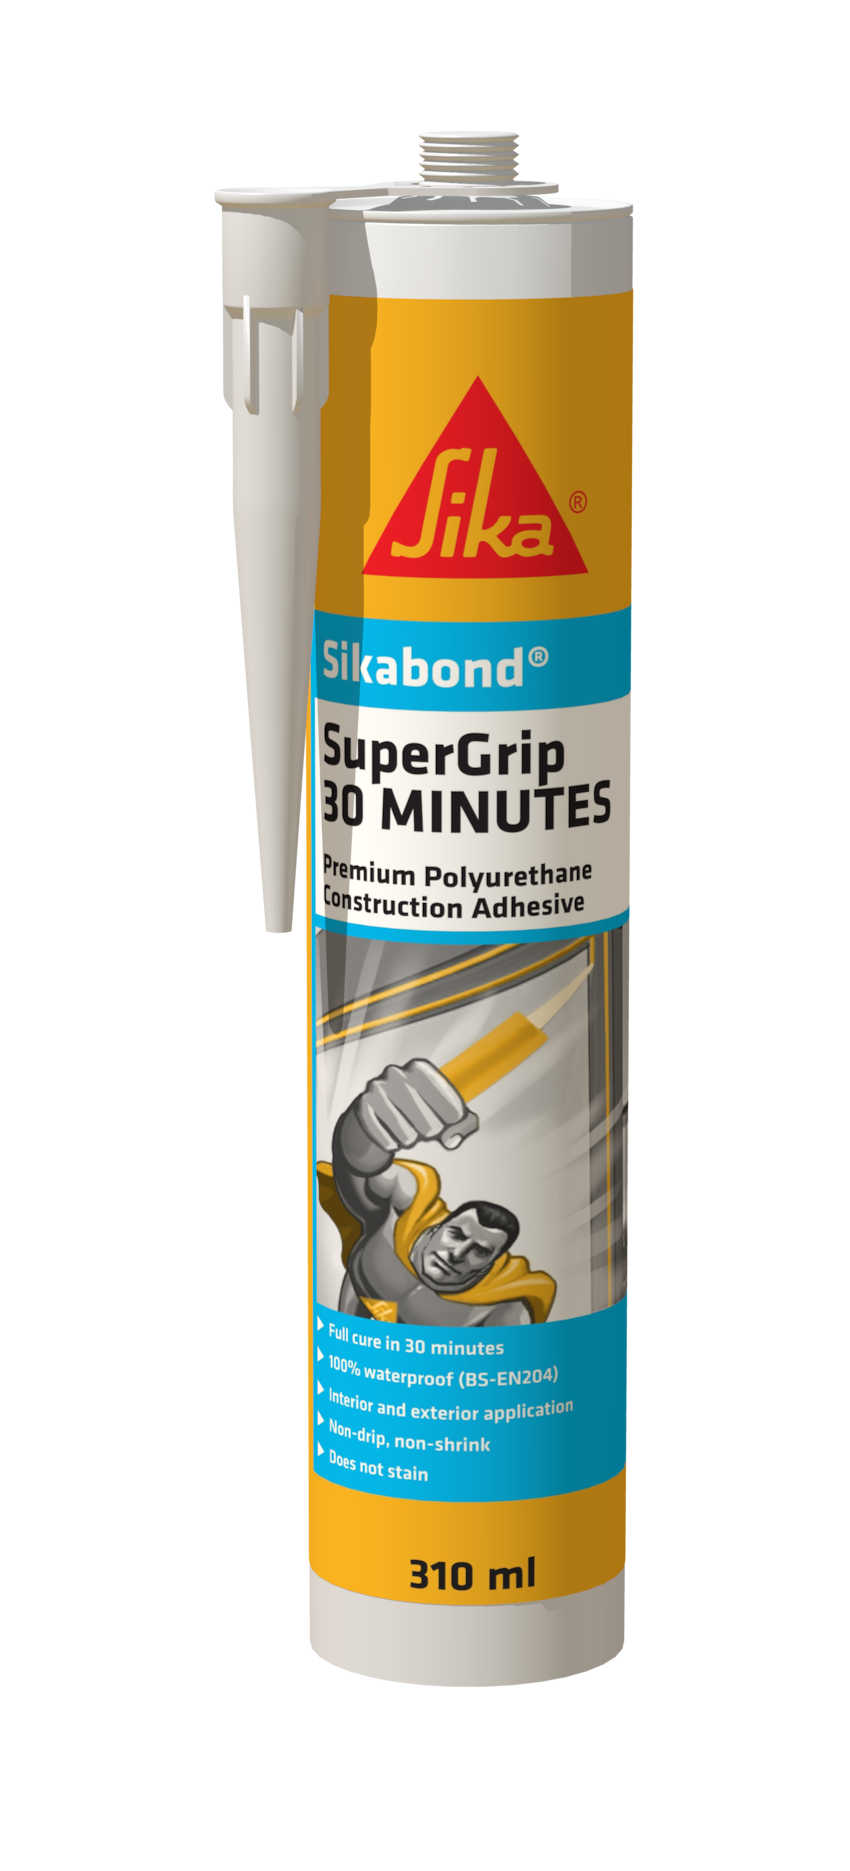 SUPERGRIP® 30 MINUTE is a polyurethane construction adhesive